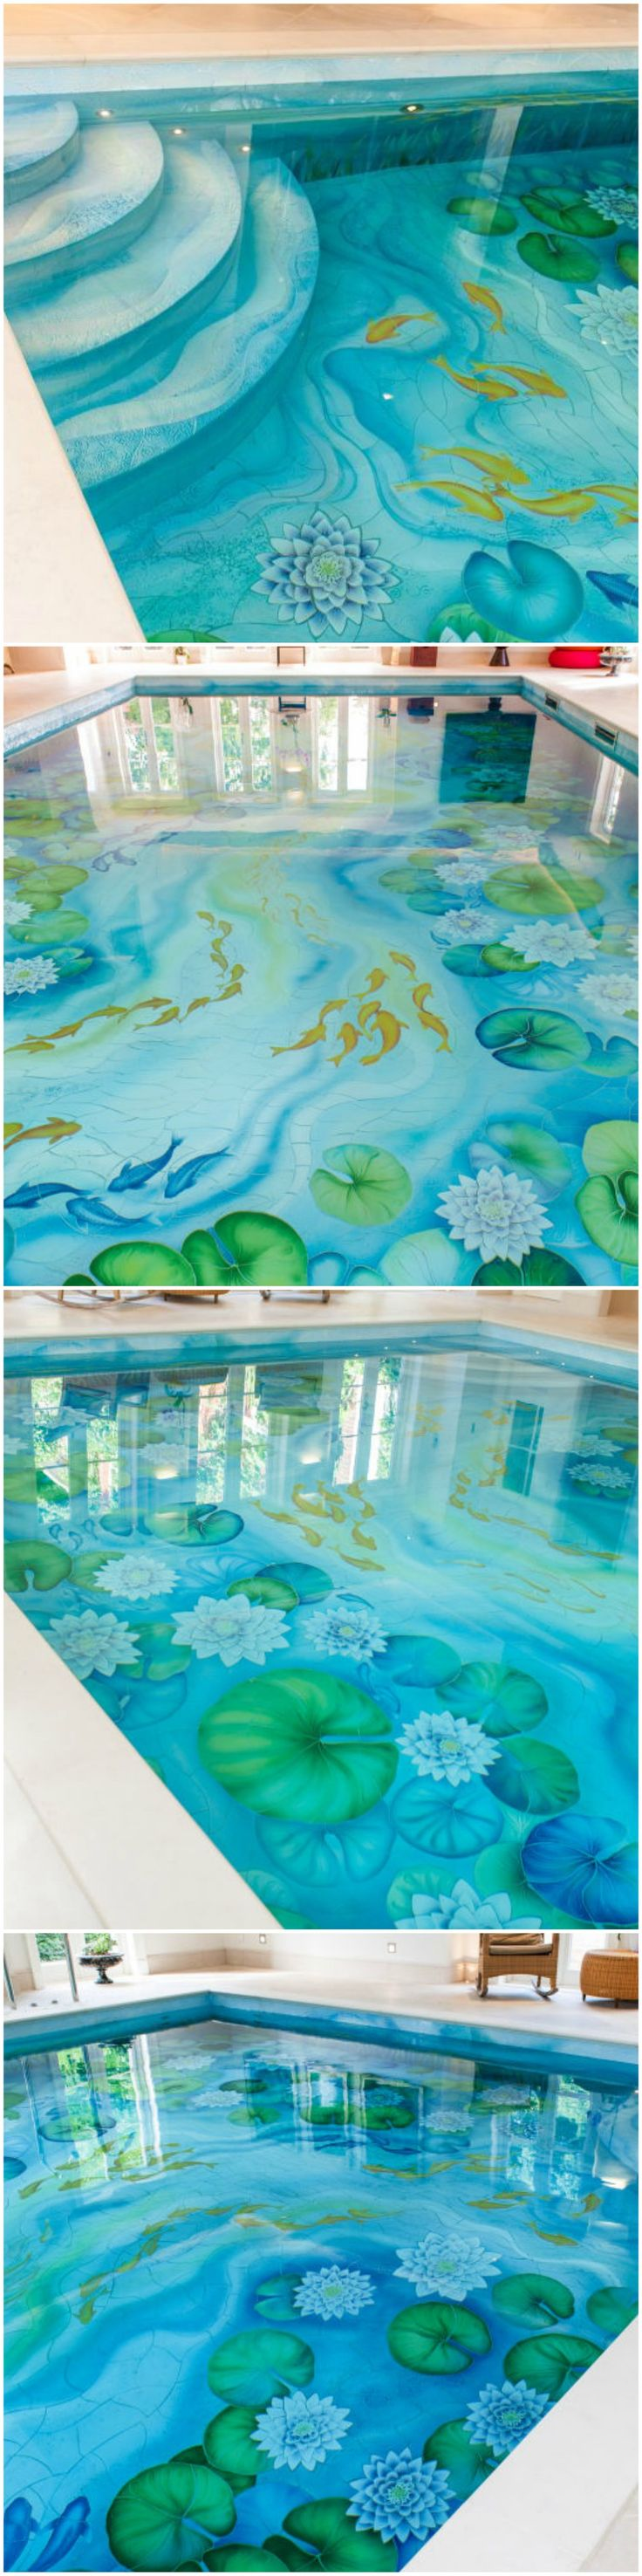 Ceramic mural: This striking indoor swimming pool design is a bold and artistic bespoke project in the sought-after area of Weybridge – and it really does take tile and pool design to the next level. Completed by Aqua Platinum Projects, along with Craig Bragdy Design, the design brief was to include an integrated slatted cover and bespoke handmade ceramic fish. (Photo: Aqua Platinum Projects)  #swimmingpool #pool #art #housegoals